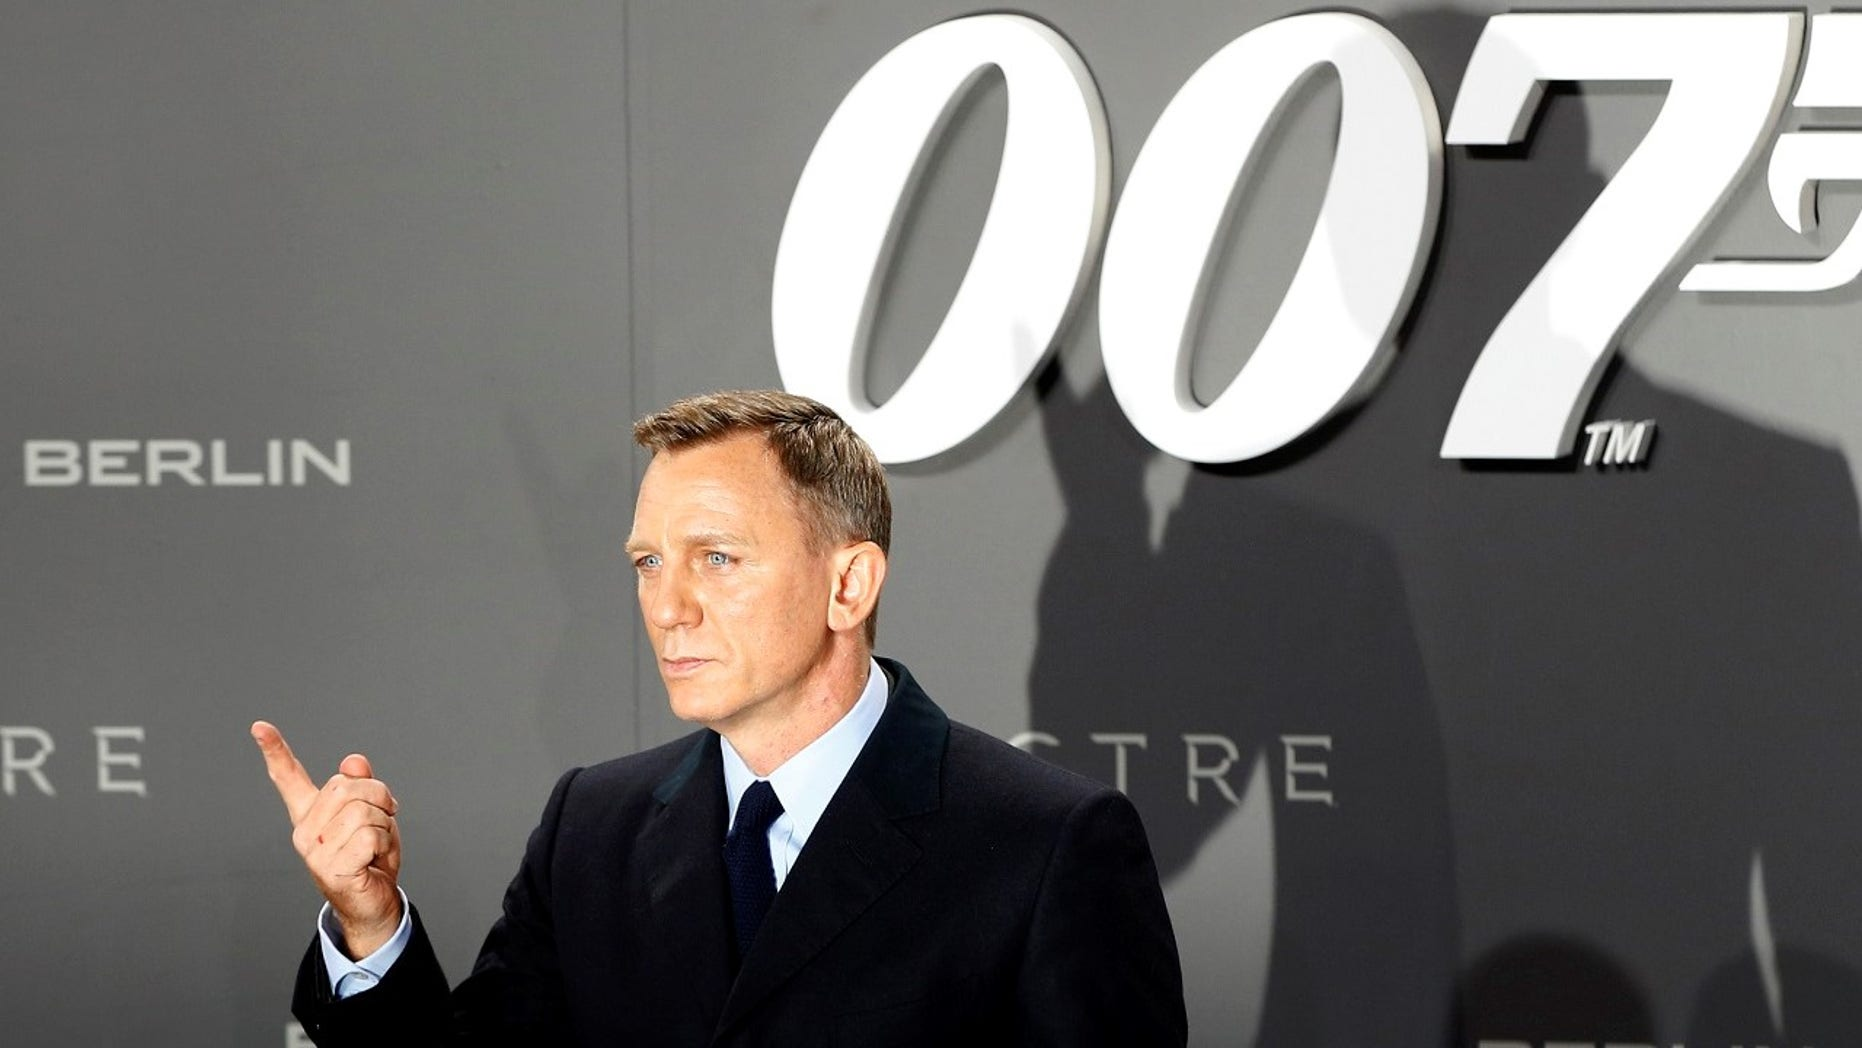 """There is strong and consistent evidence that James Bond has a chronic alcohol consumption problem at the 'severe' end of the spectrum,"" wrote the researchers."